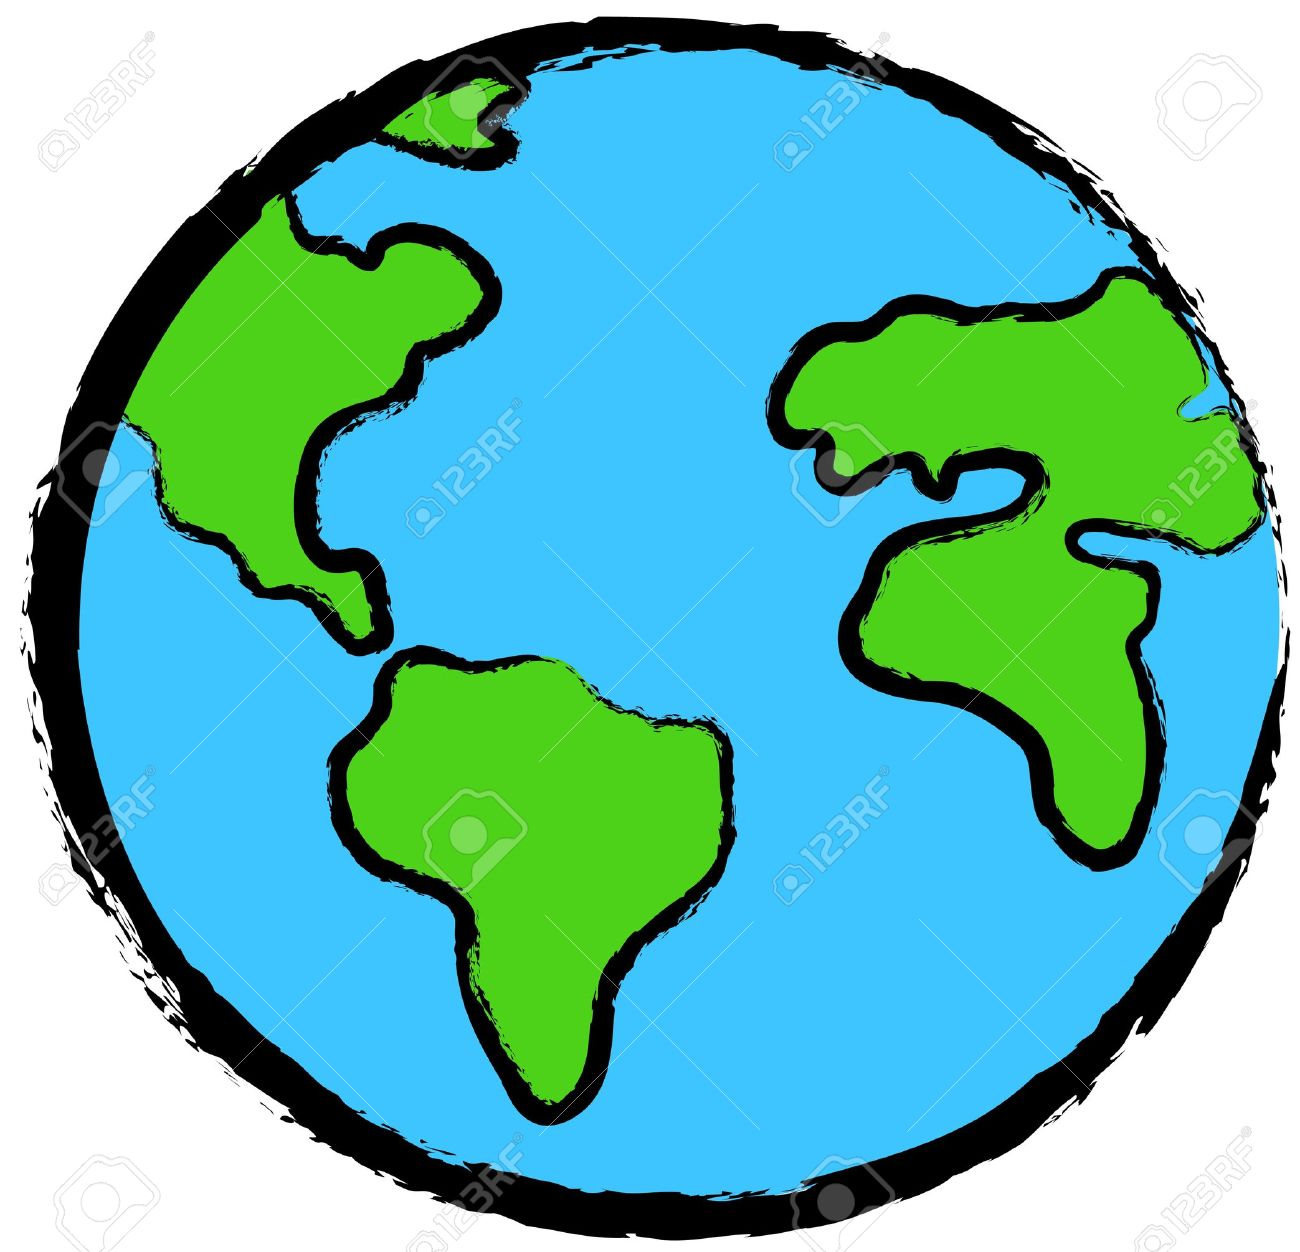 hight resolution of 1300x1252 planet clipart eart